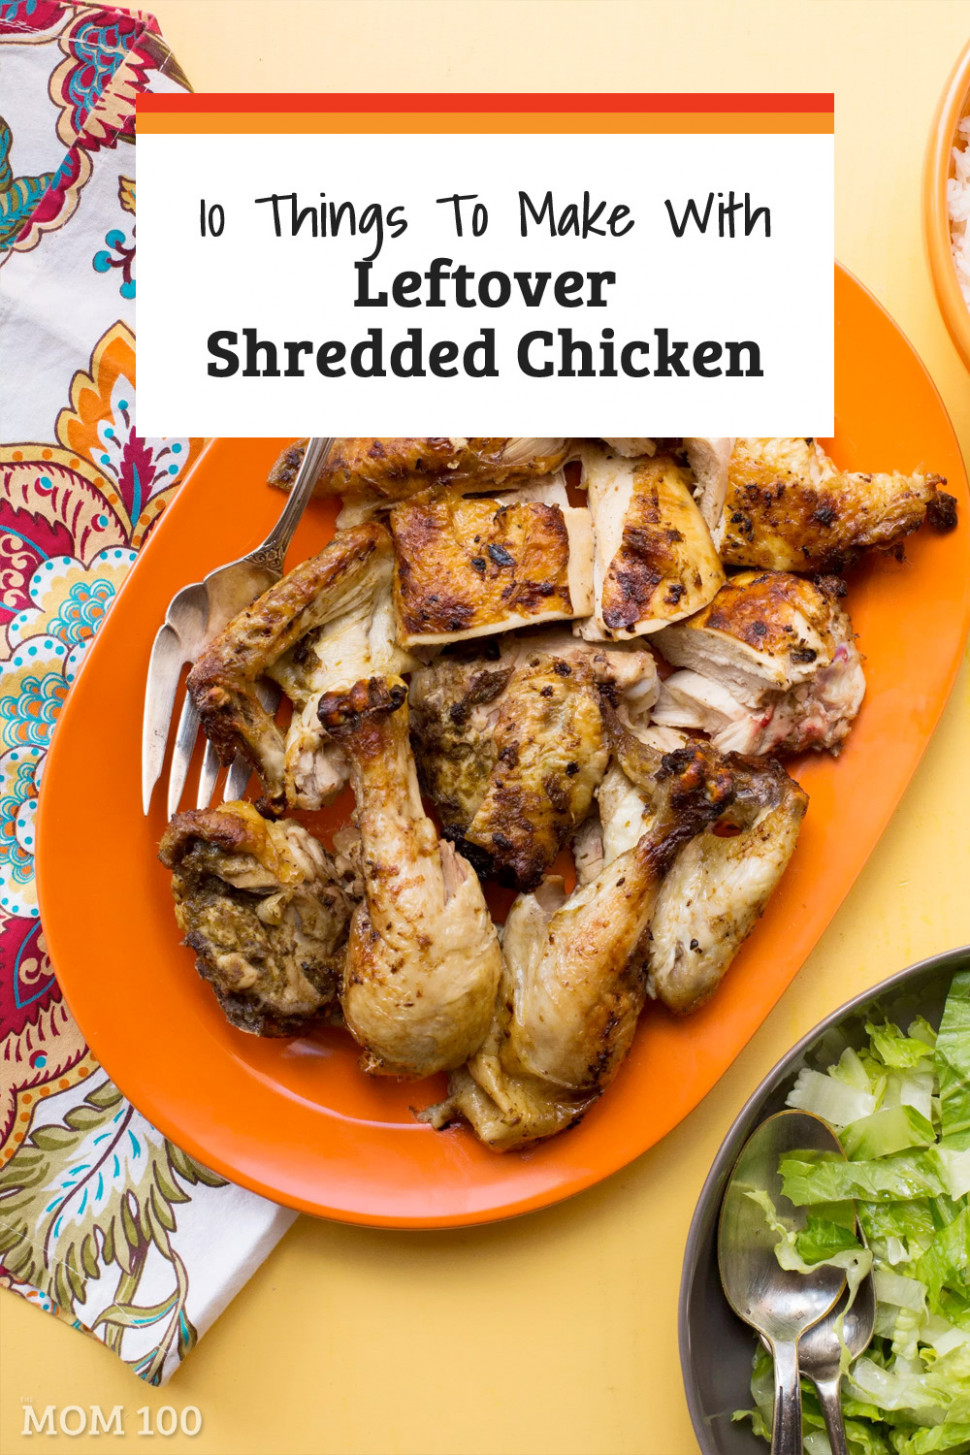 15 Things To Make With Leftover Shredded Chicken — The Mom 150 - recipes using leftover chicken